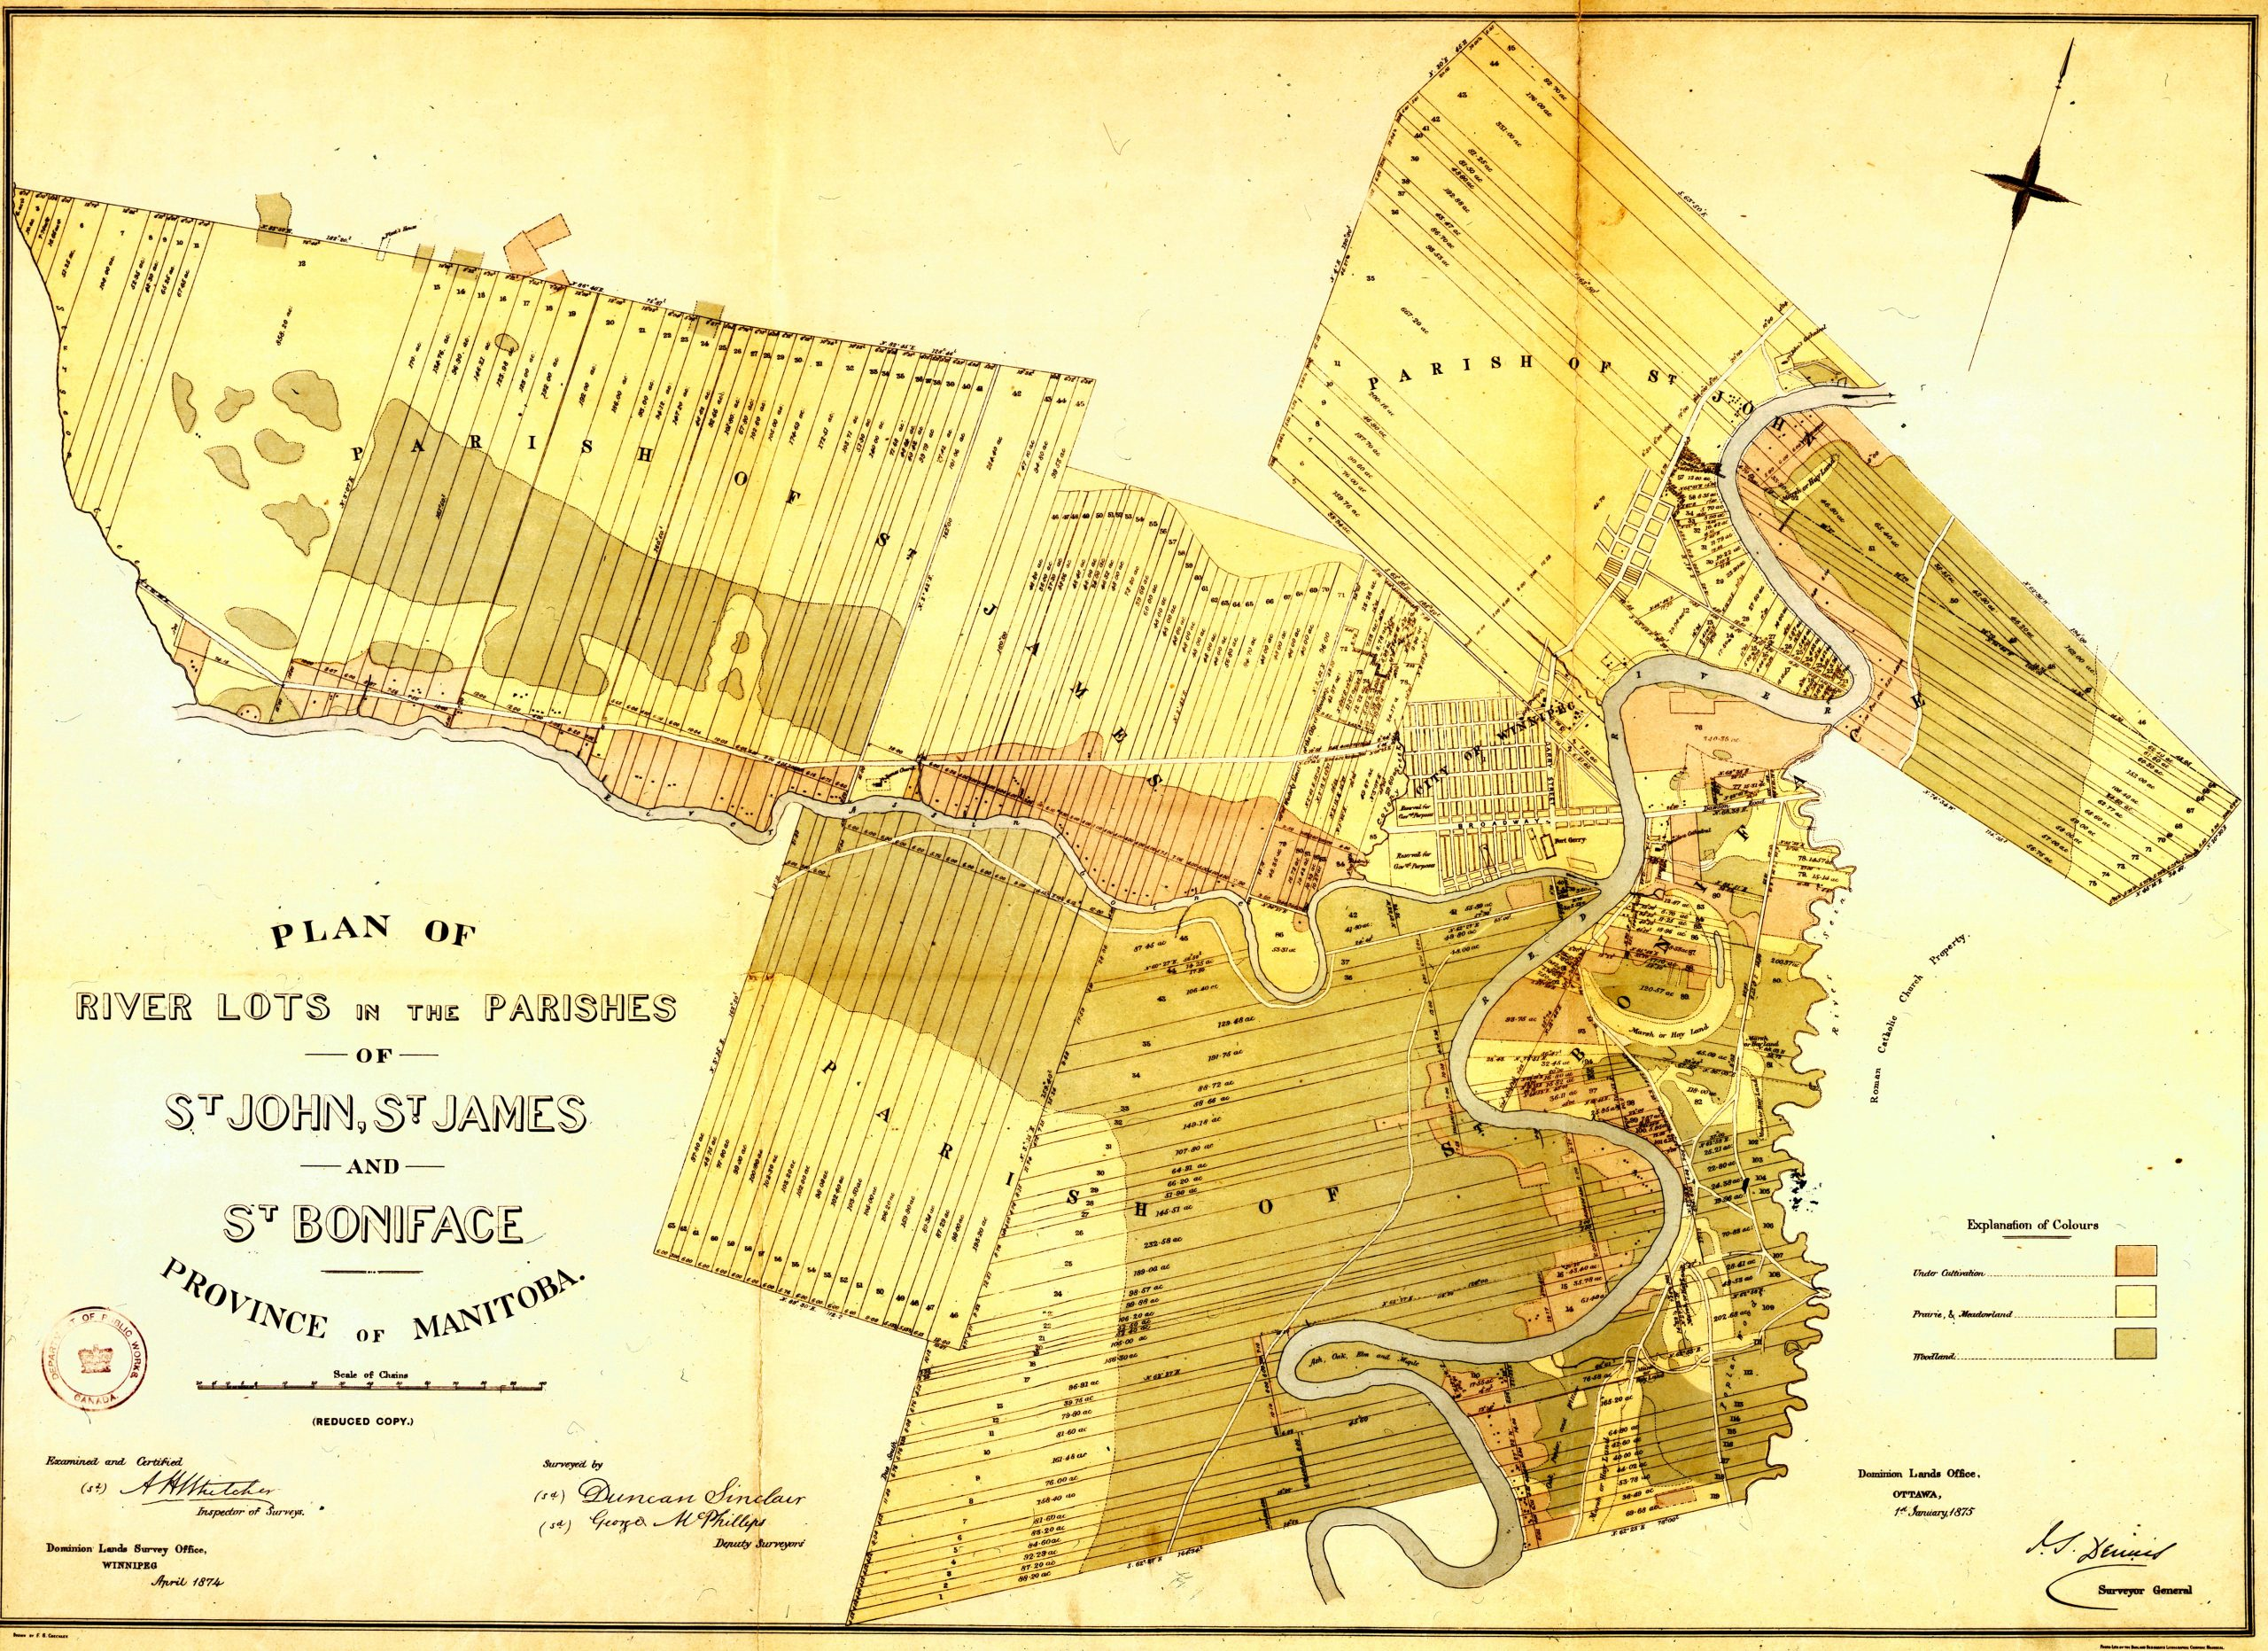 Plan of River Lots in the Parishes of St John St James and St Boniface 1874